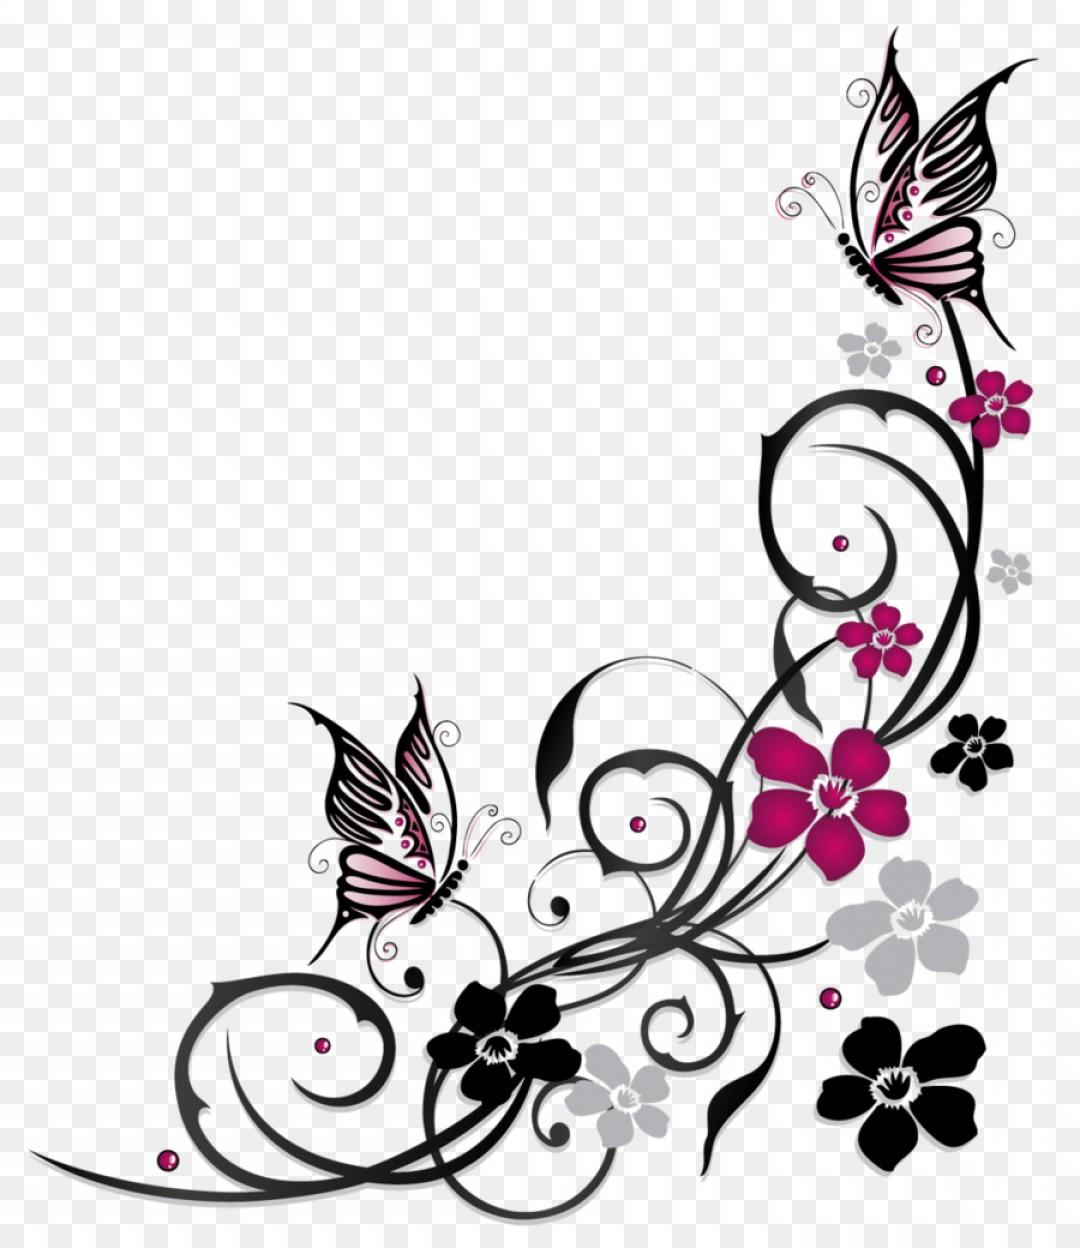 1080x1248 Png Butterfly Flower Ornament Vector Flowers Butterfly Rongholland